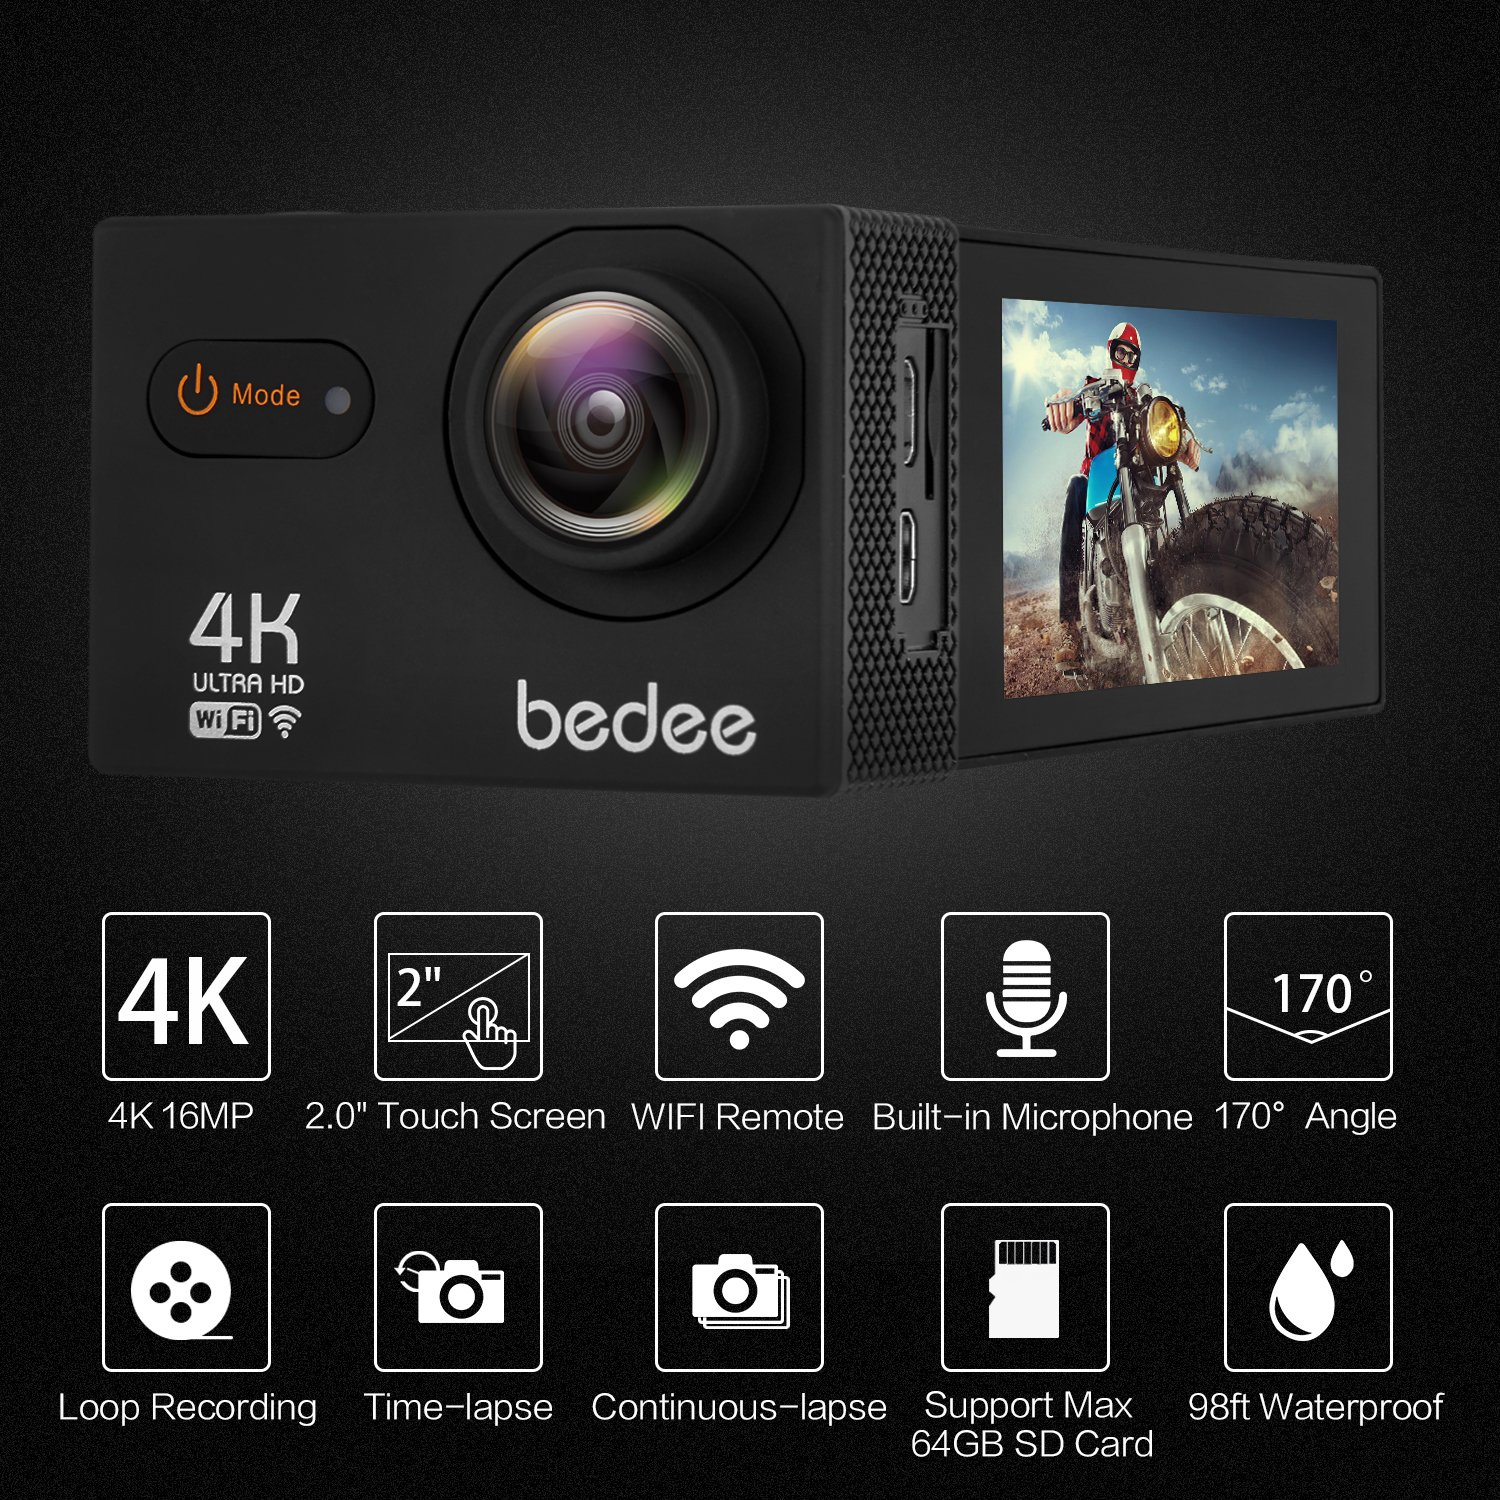 bedee 4K Action Camera Waterproof Sport Camera HD Camcorder 16MP 170 Degree View Angle 2 Inch TFT Screen W/Rechargeable 1050mAh Battery/1919 Accessories Kits